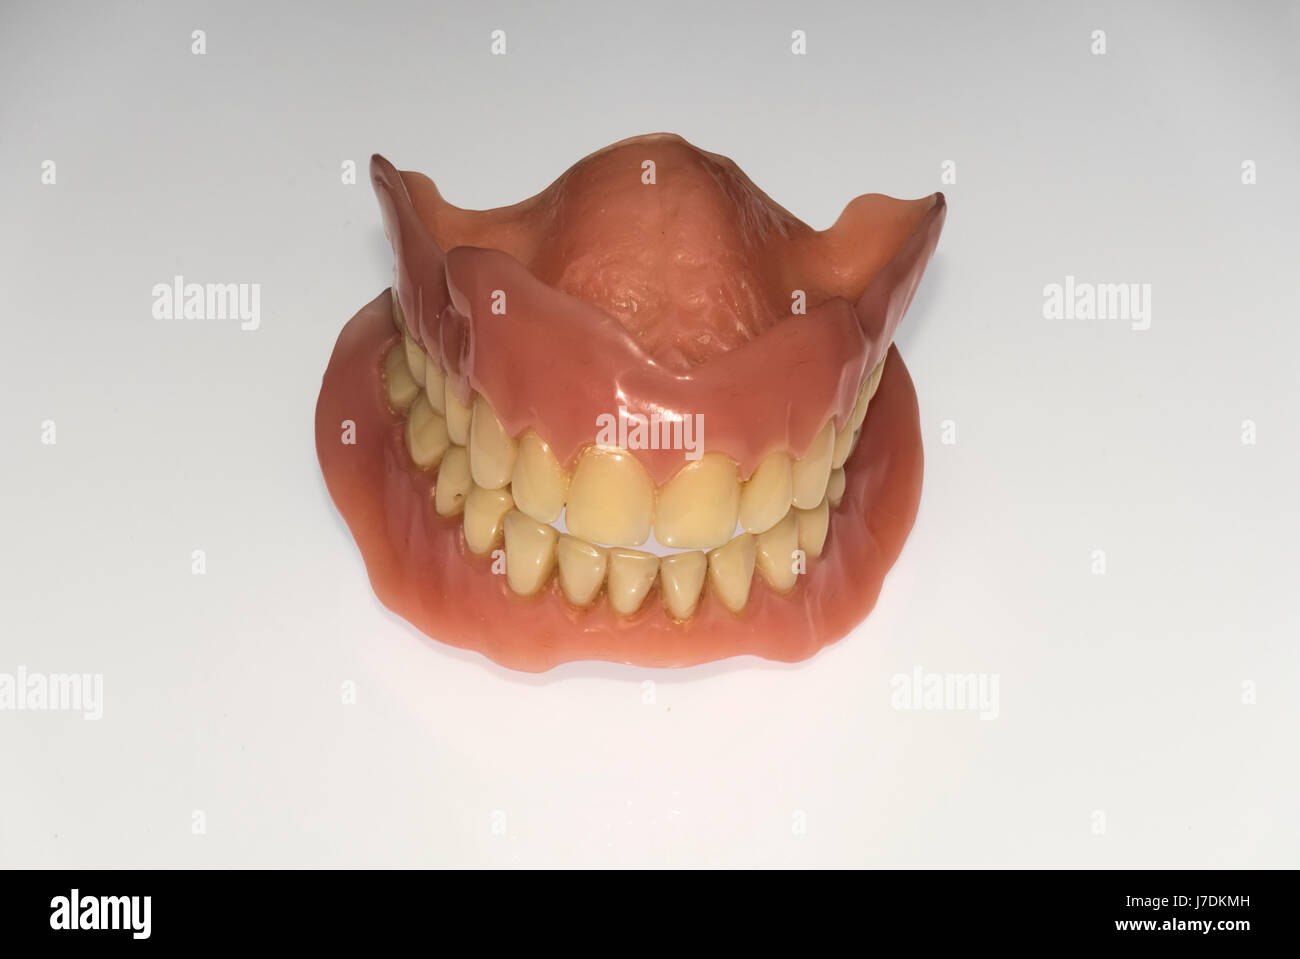 full-set-of-false-teeth-J7DKMH.jpg